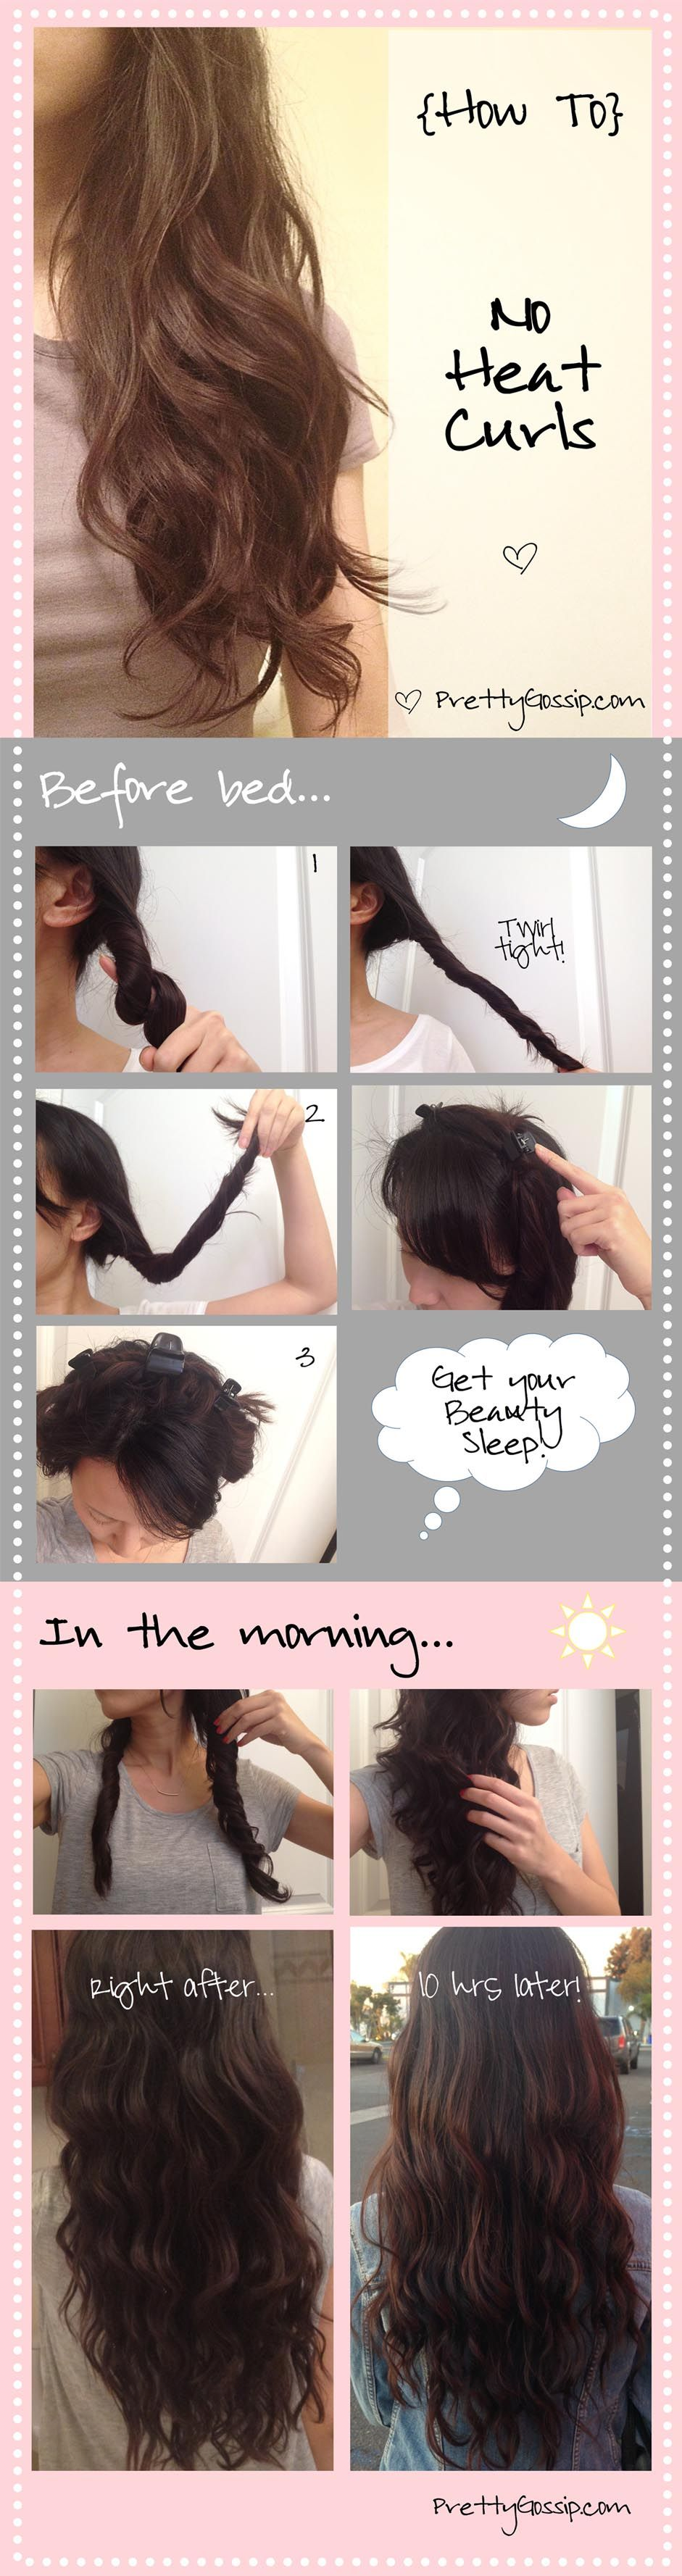 5 Ways To Make Your Hair Curly With No Heat Hair Styles Curly Hair Styles Curls No Heat